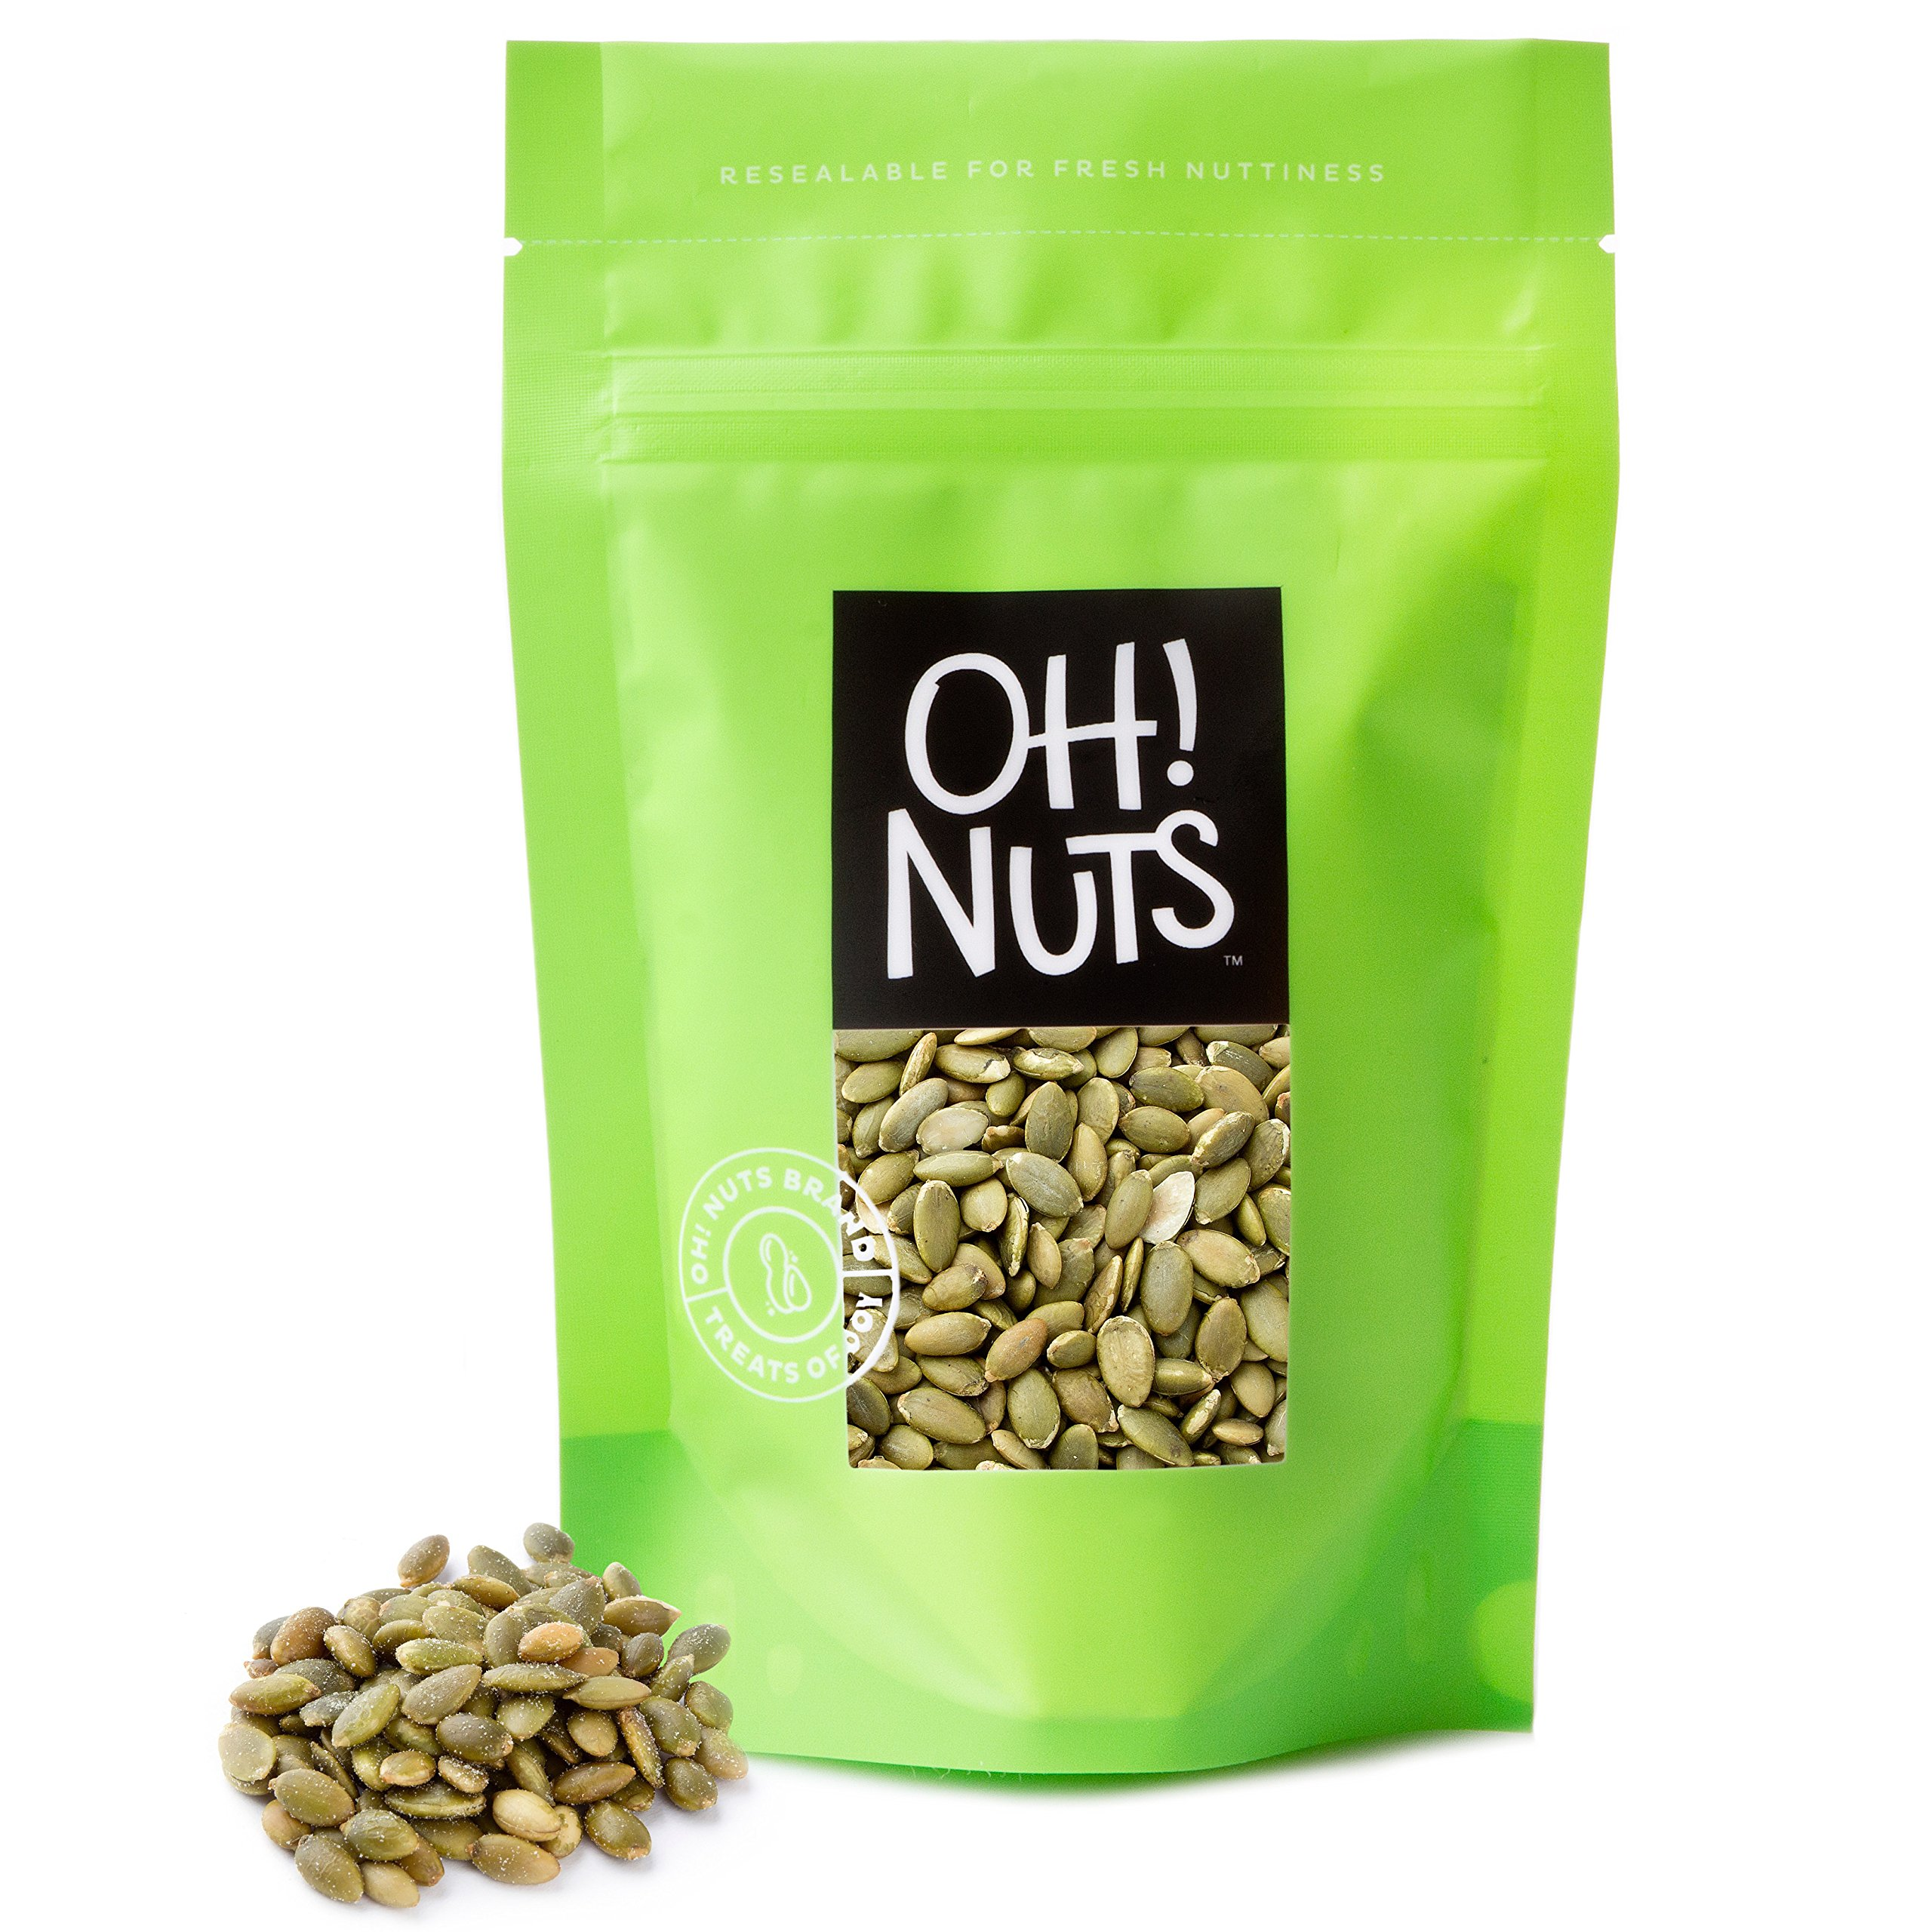 Pumpkin Seeds Roasted Unsalted, Pepitas Roasted Unsalted Great for Healthy Snacking or Salad Toppings No Shell 2 Pounds in a Resealable Bag - Oh! Nuts by Oh! Nuts